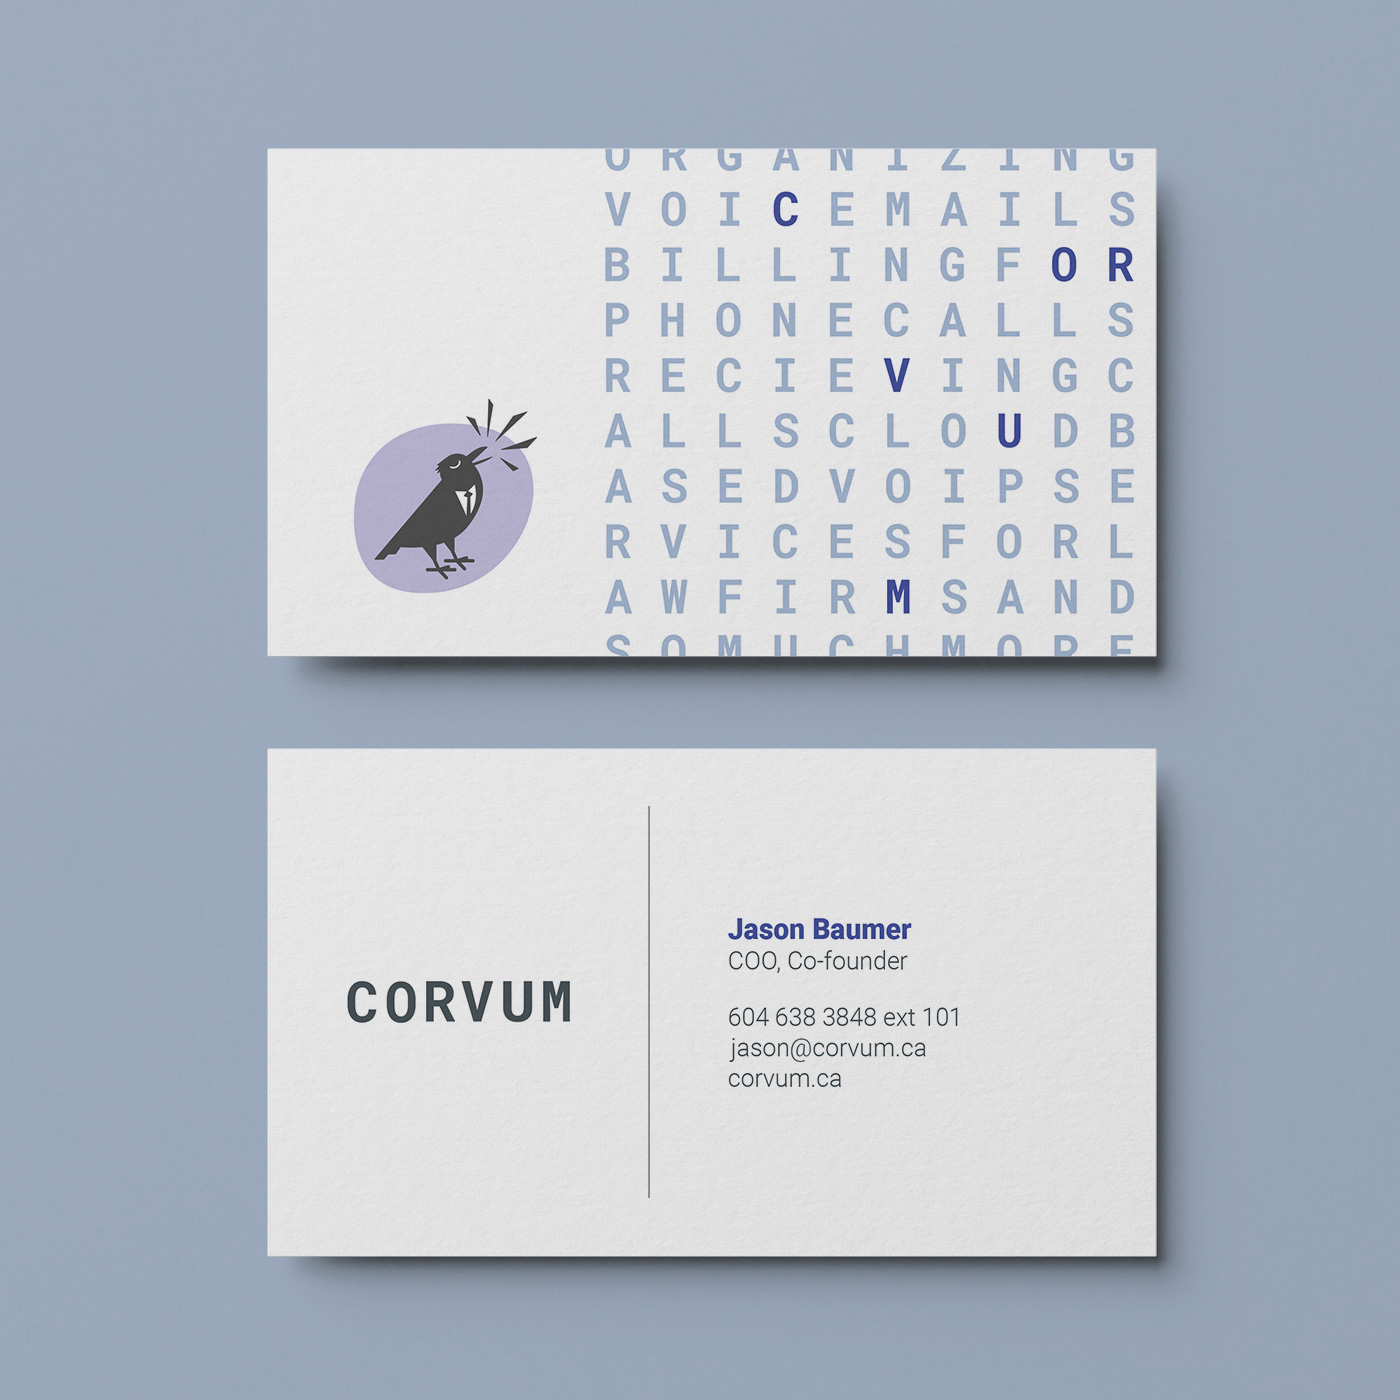 Brand design and strategy for CORVUM by Flipside Creative.